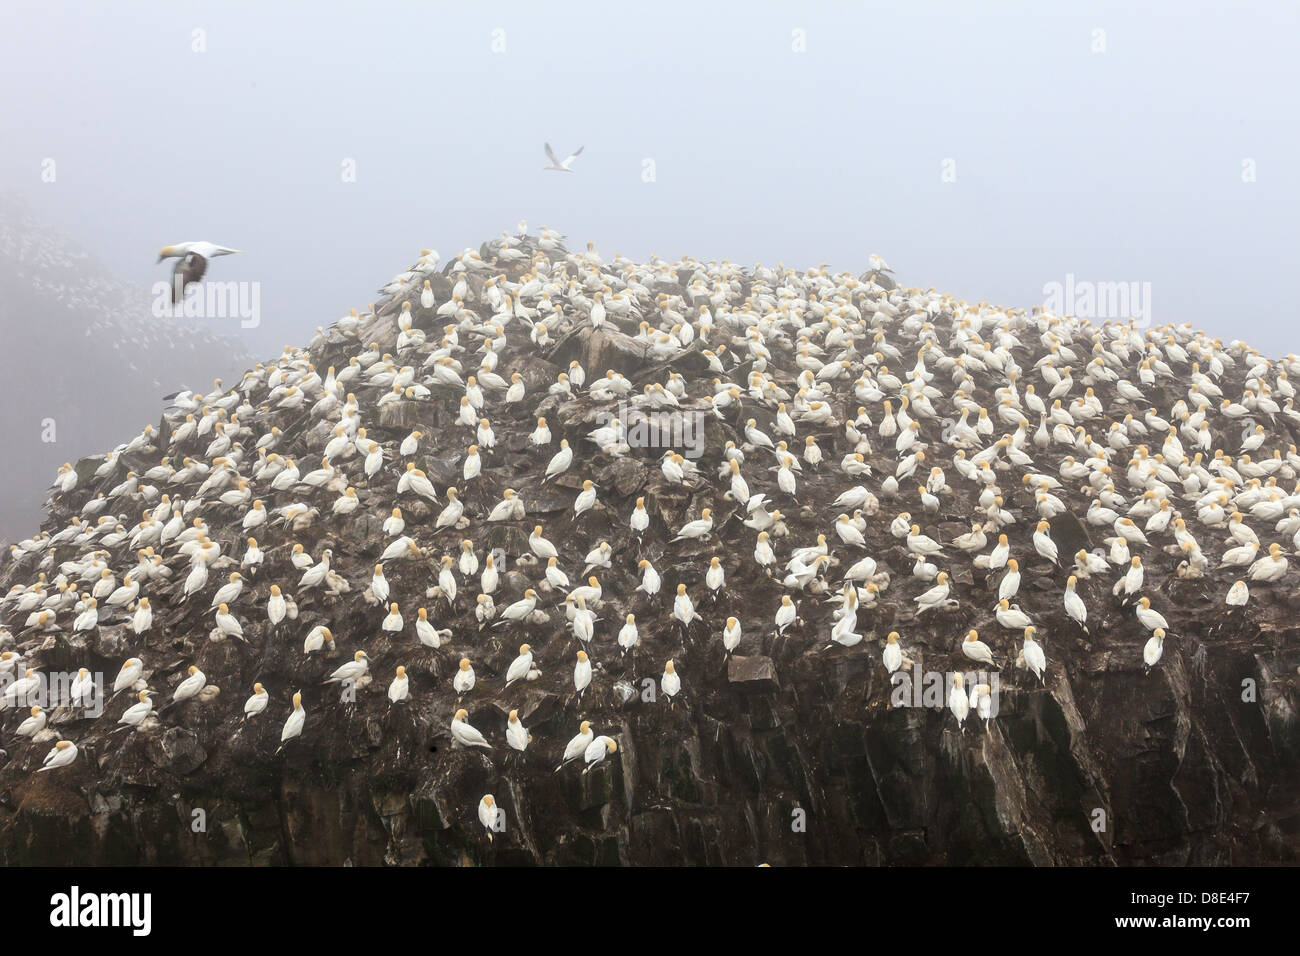 Northern Gannet Colony in Bird Rock, Cape St Mary, Newfoundland, Canada - Stock Image